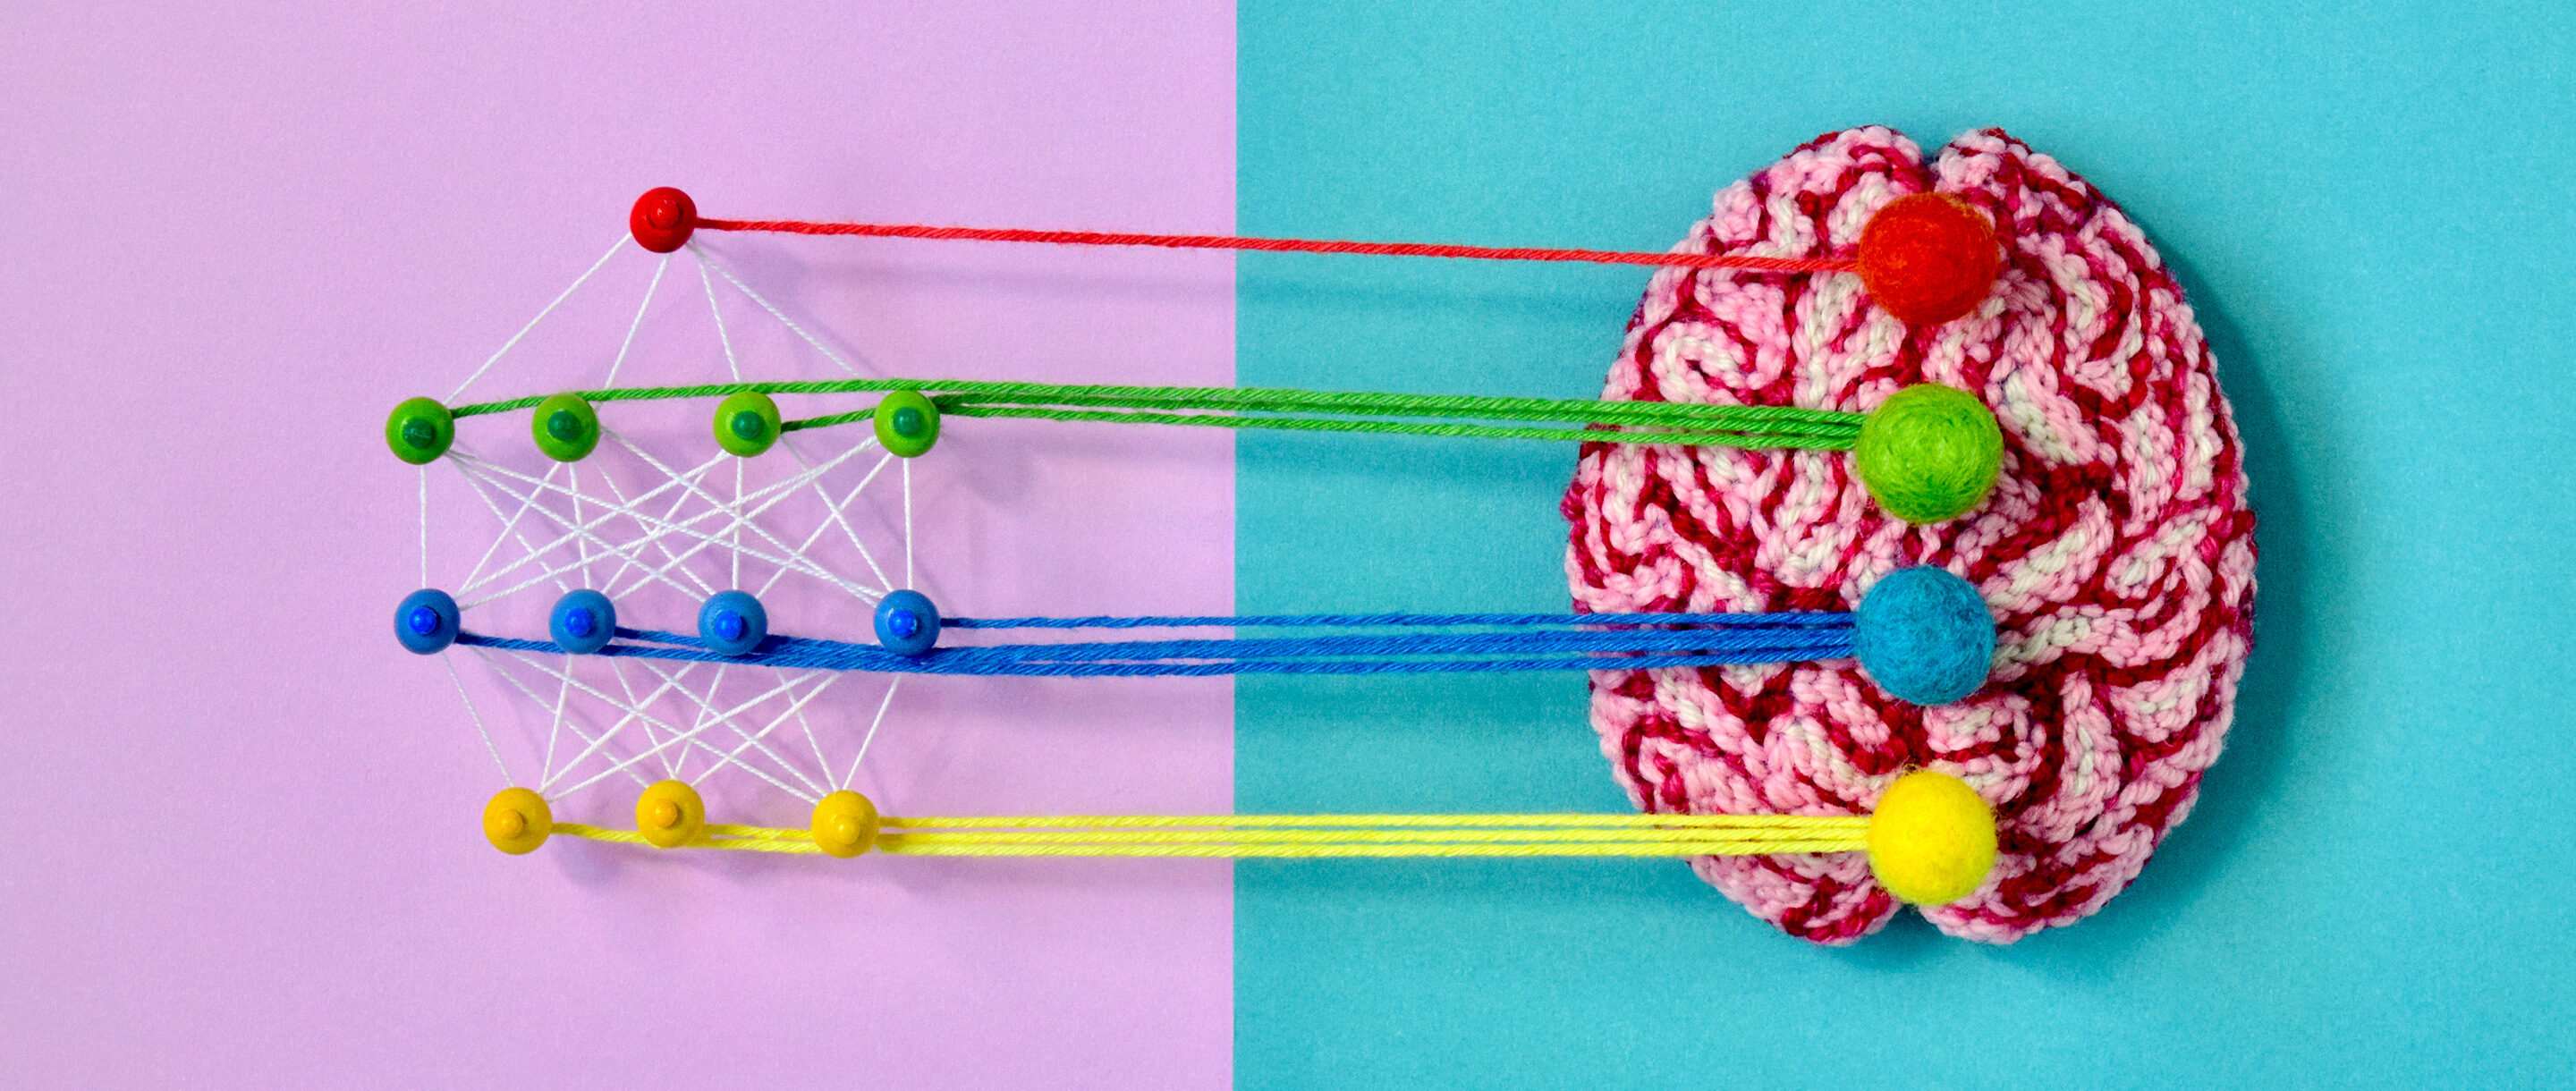 Yarn models of a deep learning network and a brain.